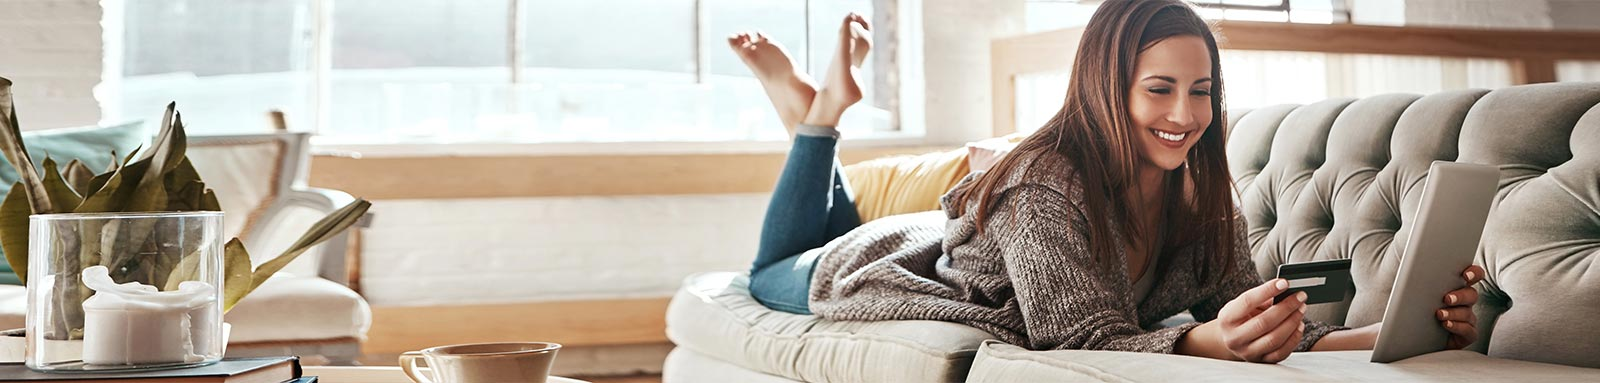 Woman holding ipad on a sofa at home